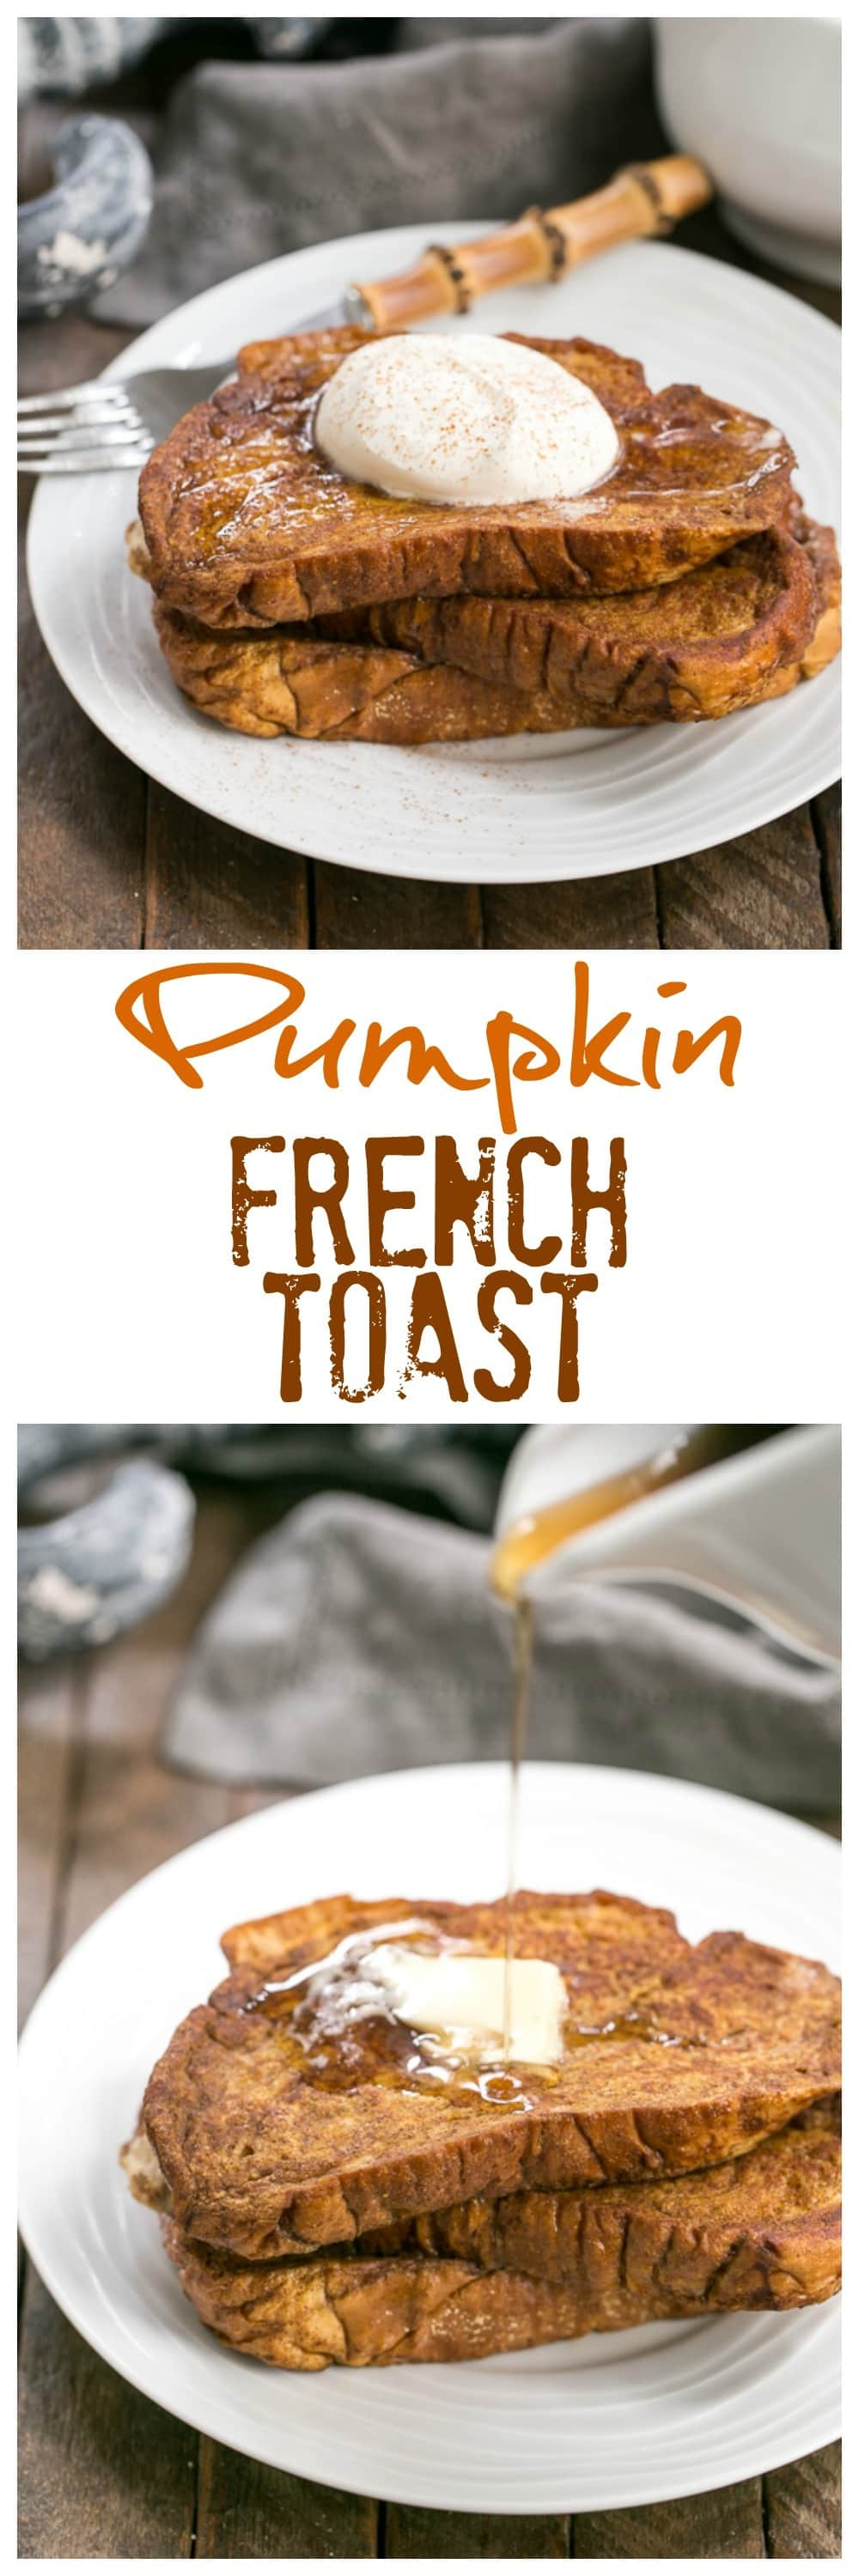 Pumpkin French Toast with Mascarpone Whipped Cream - That Skinny Chick ...